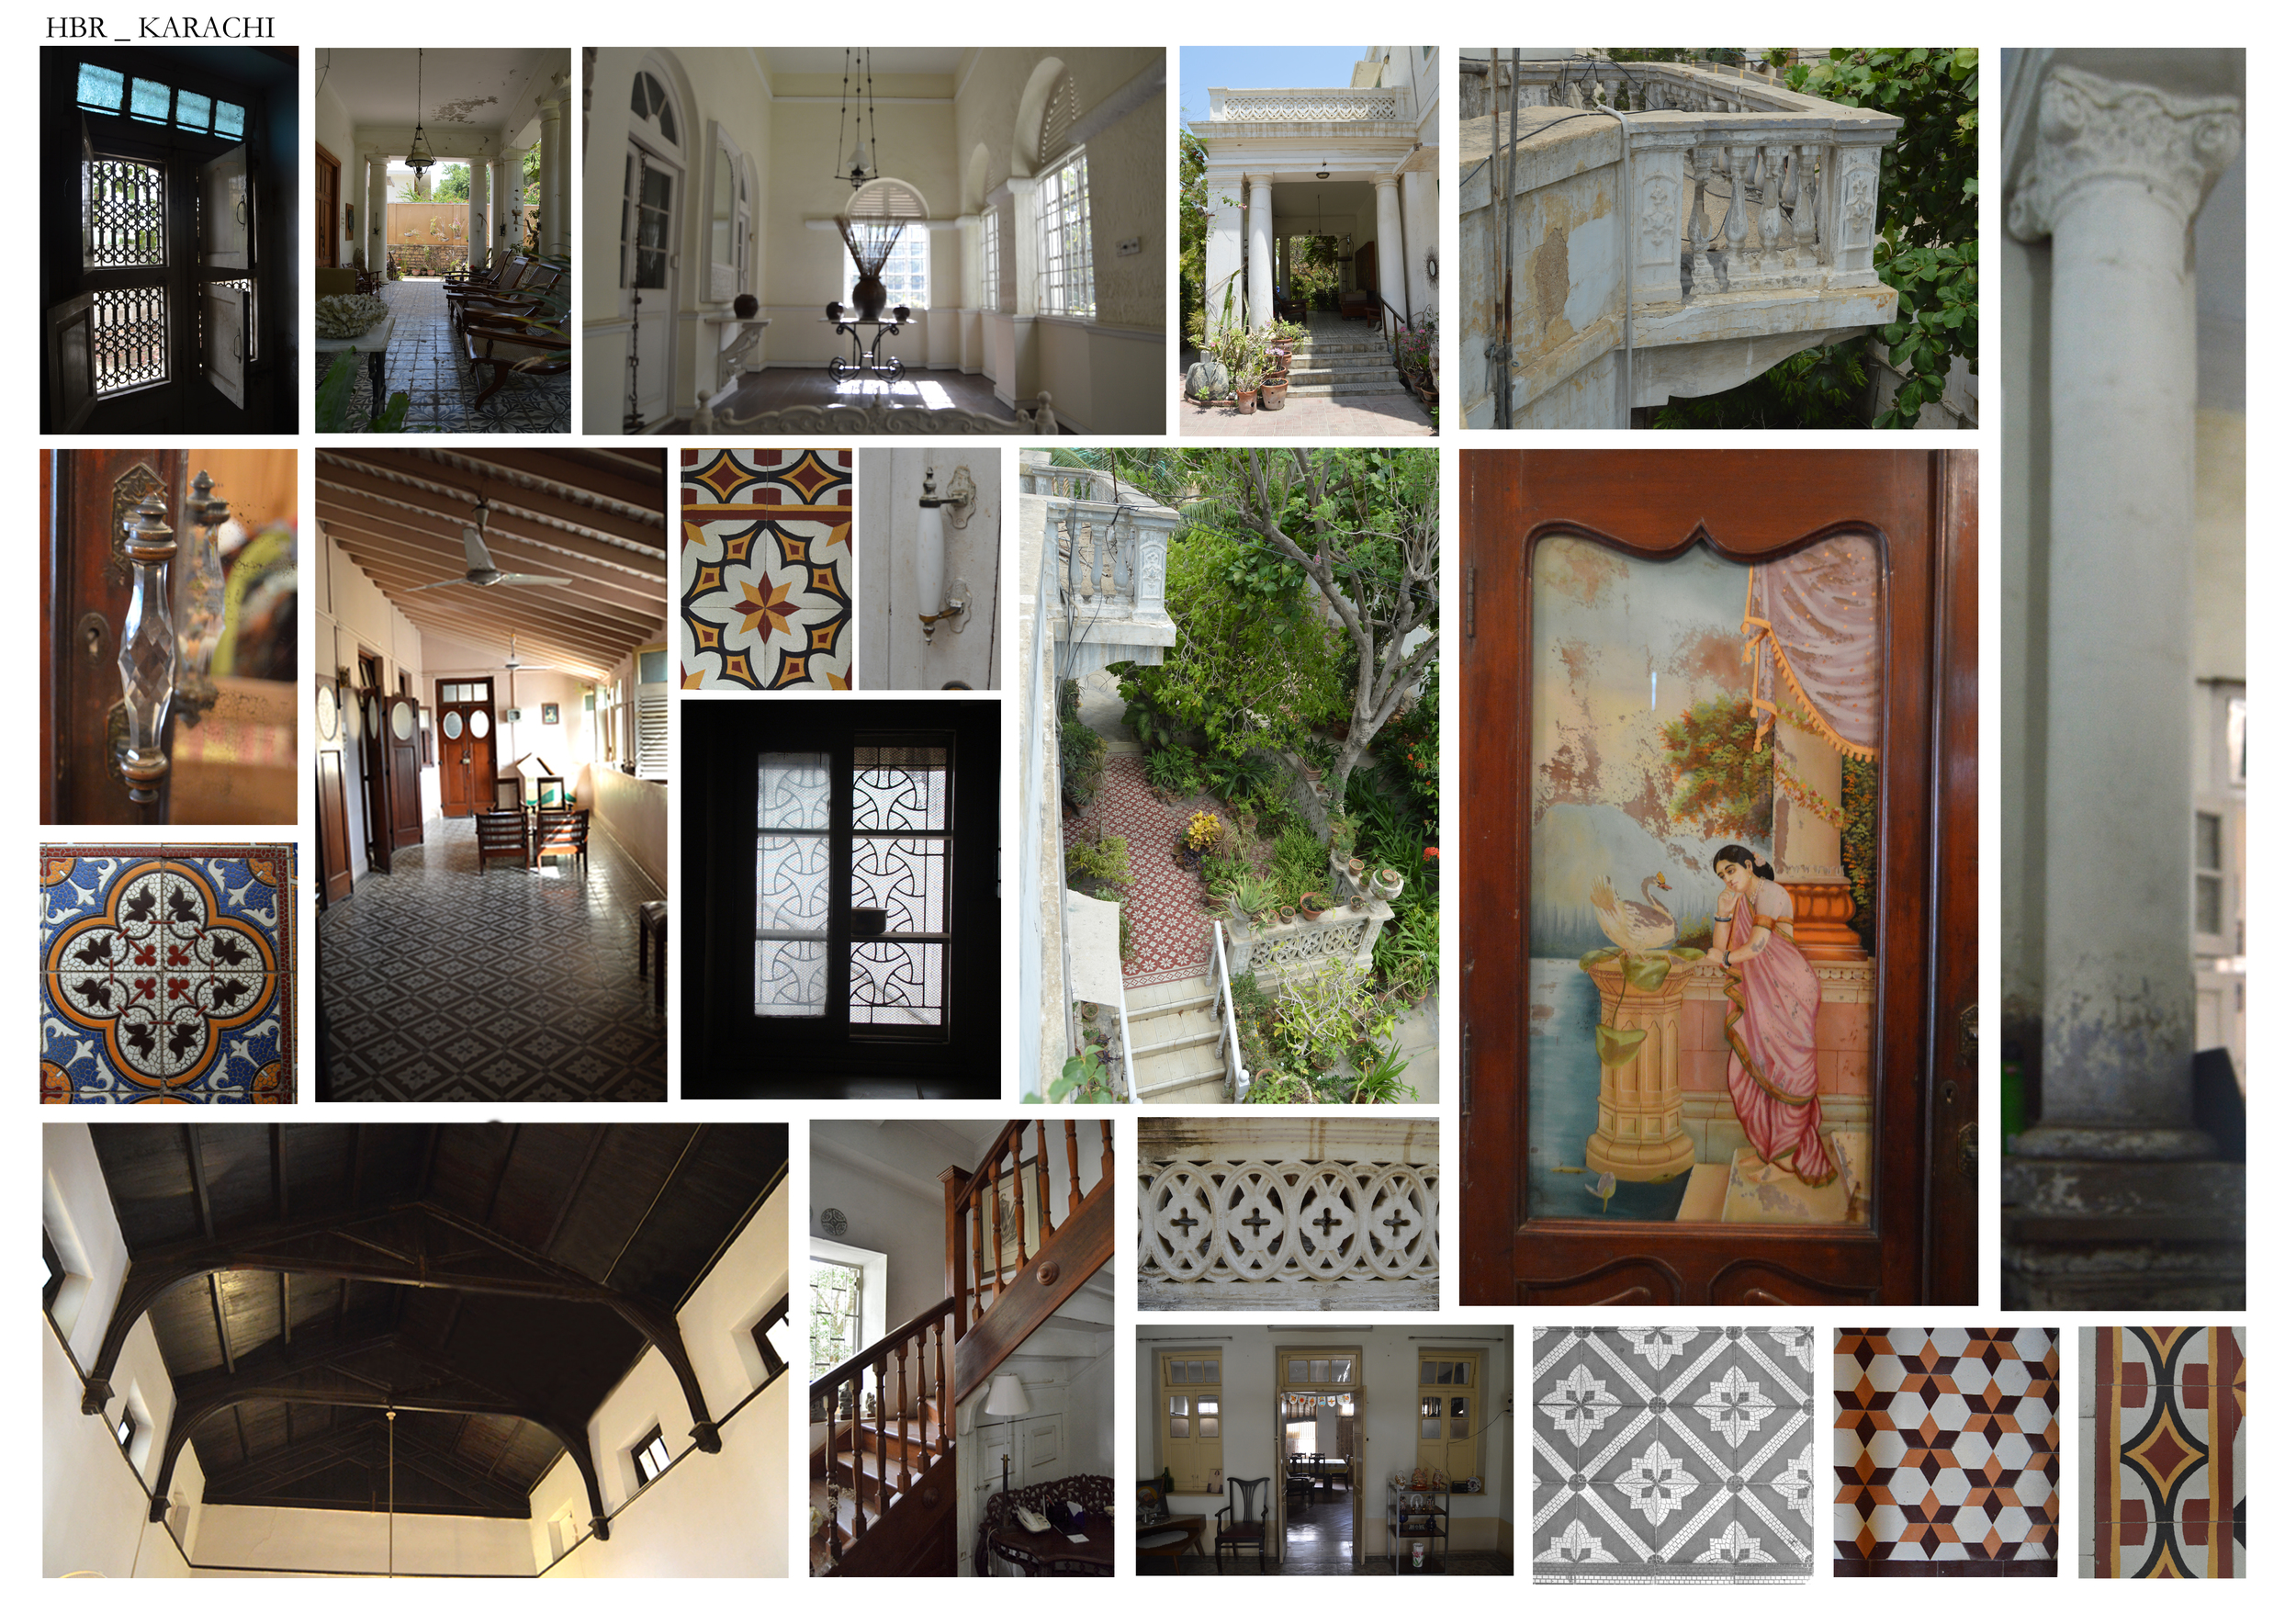 Key Architectural Features identify the style and era the bungalows belong to. The styles are broken down by the Period or Movement they are traditionally associated with. Architectural elements and features such as ventilators, windows, corridors, porticos, columns, jaali aid in recognizing the style and period of the Bungalow. These considerations will provide useful guidance when examining the significance of a building.